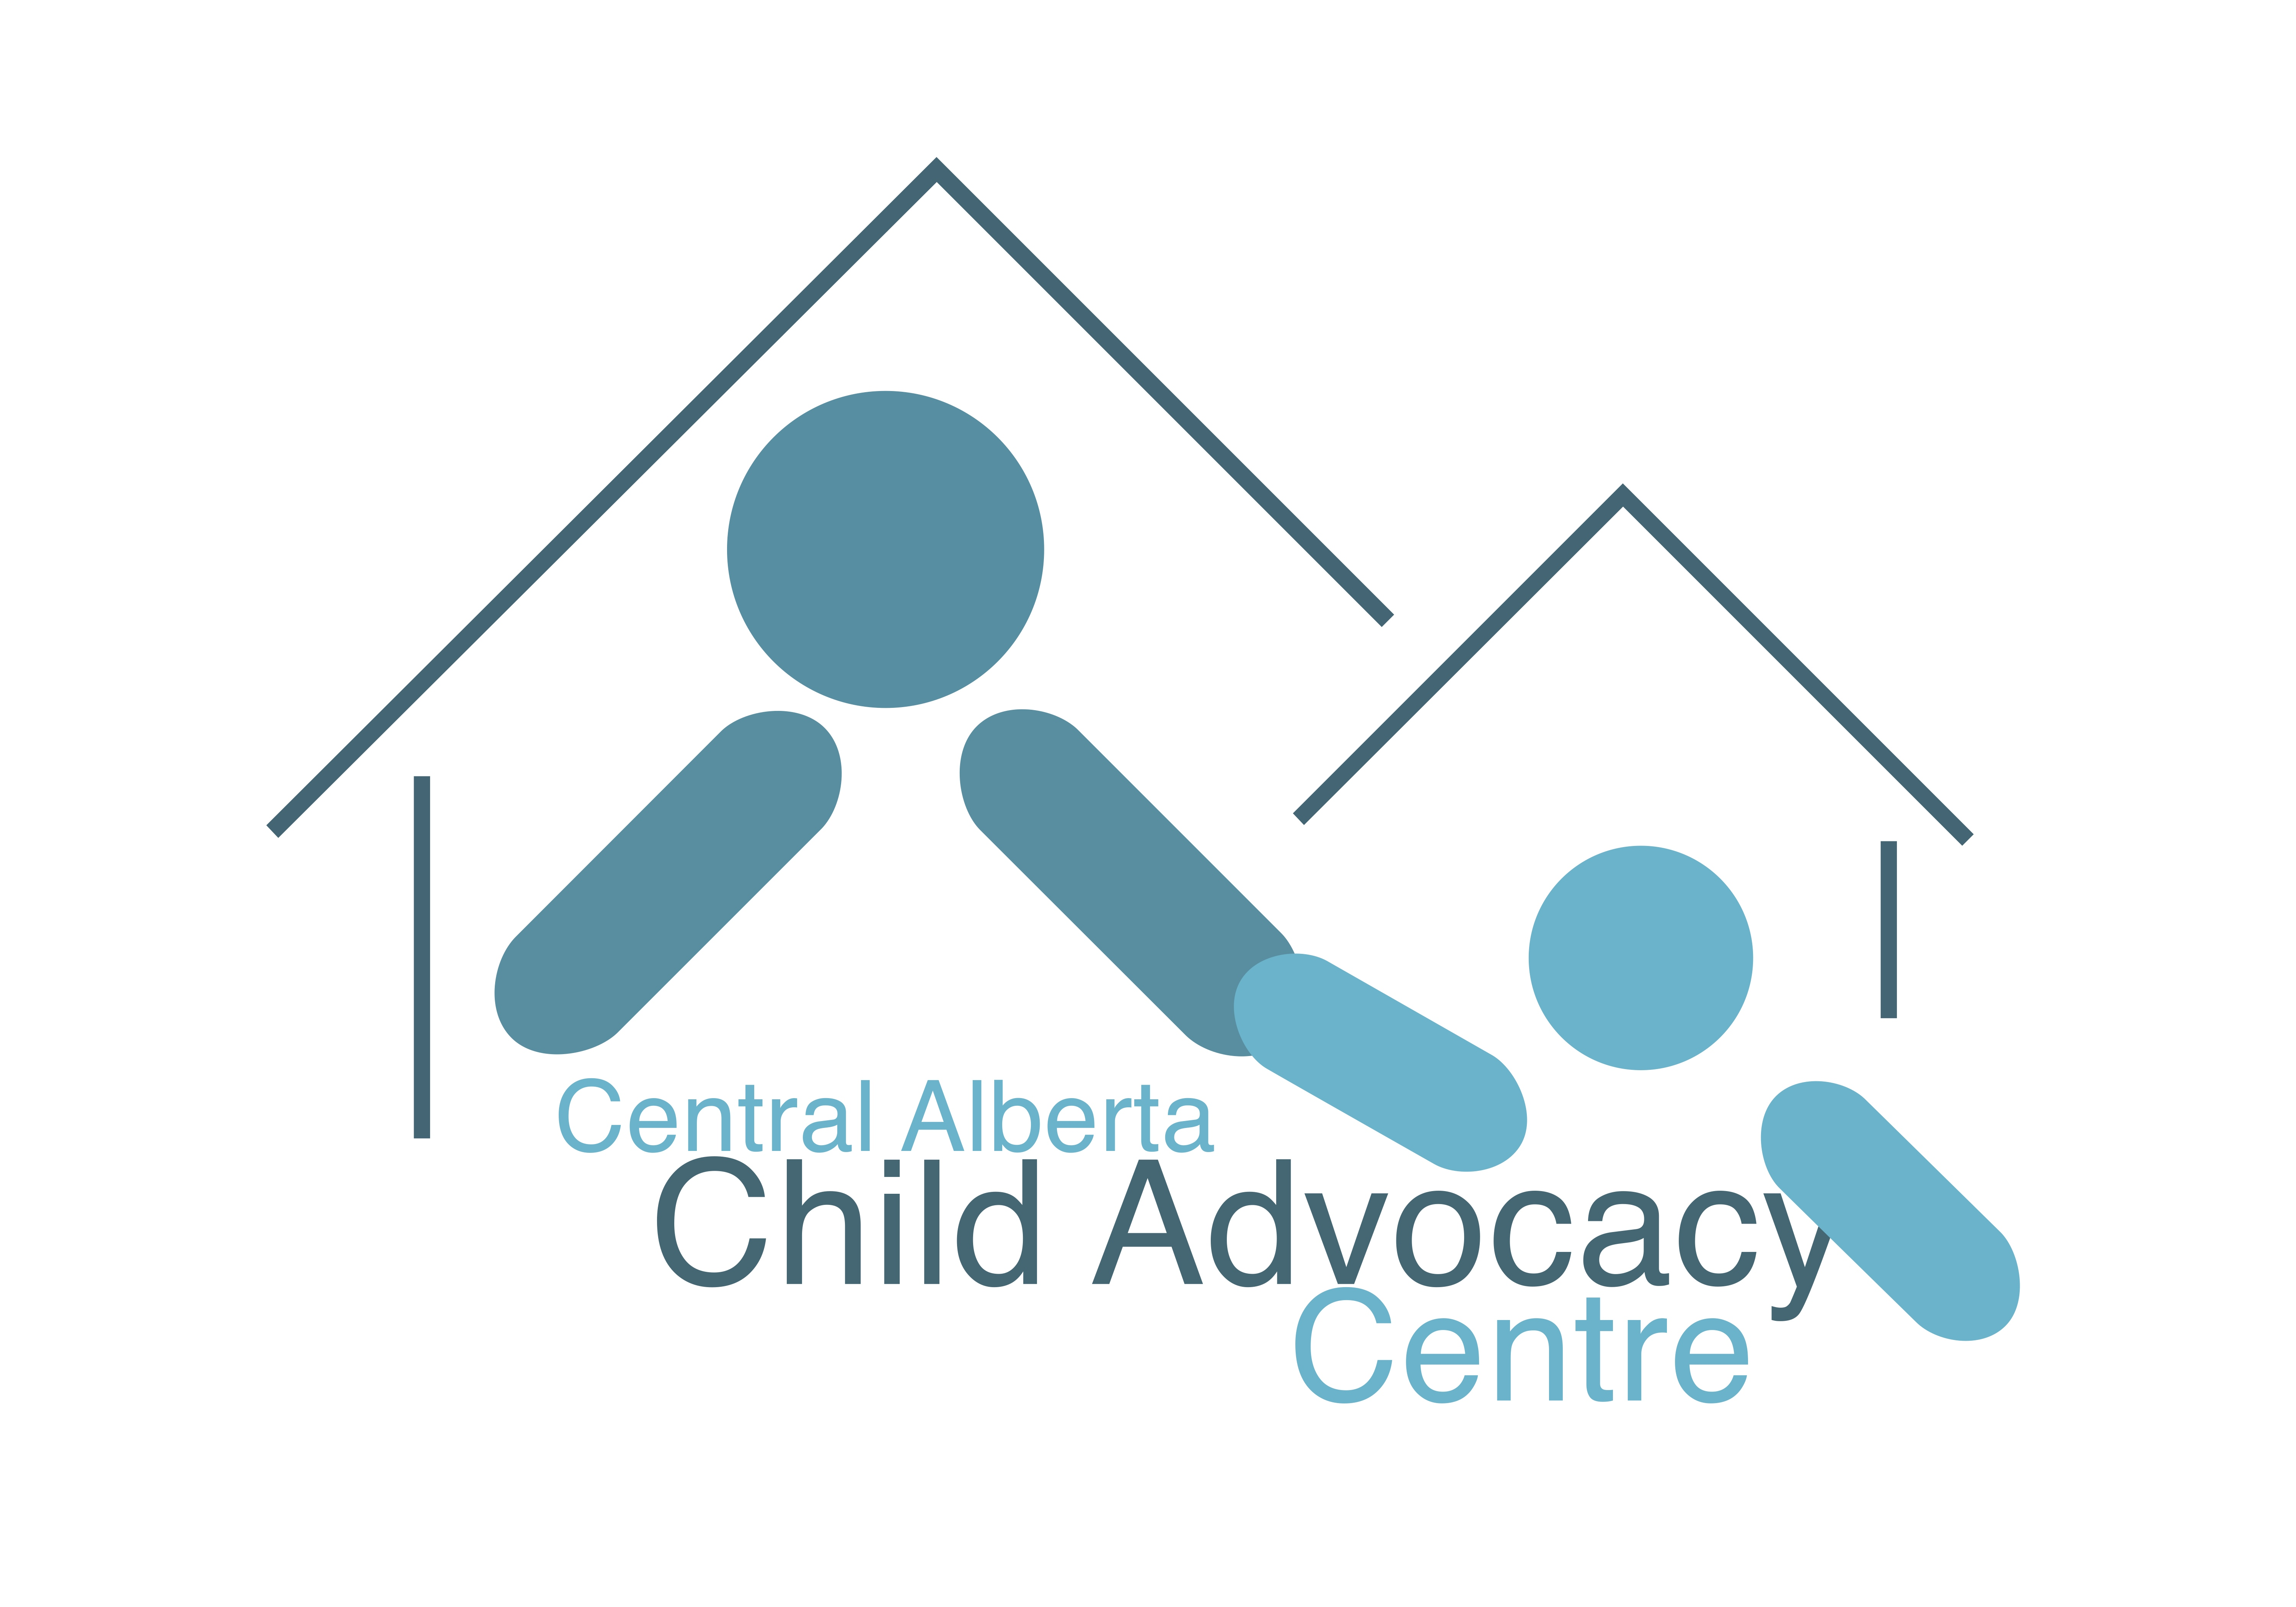 Central alberta child advocacy centre todayville through healing children suffering abuse look forward to a brighter future child advocacy centre aiddatafo Choice Image